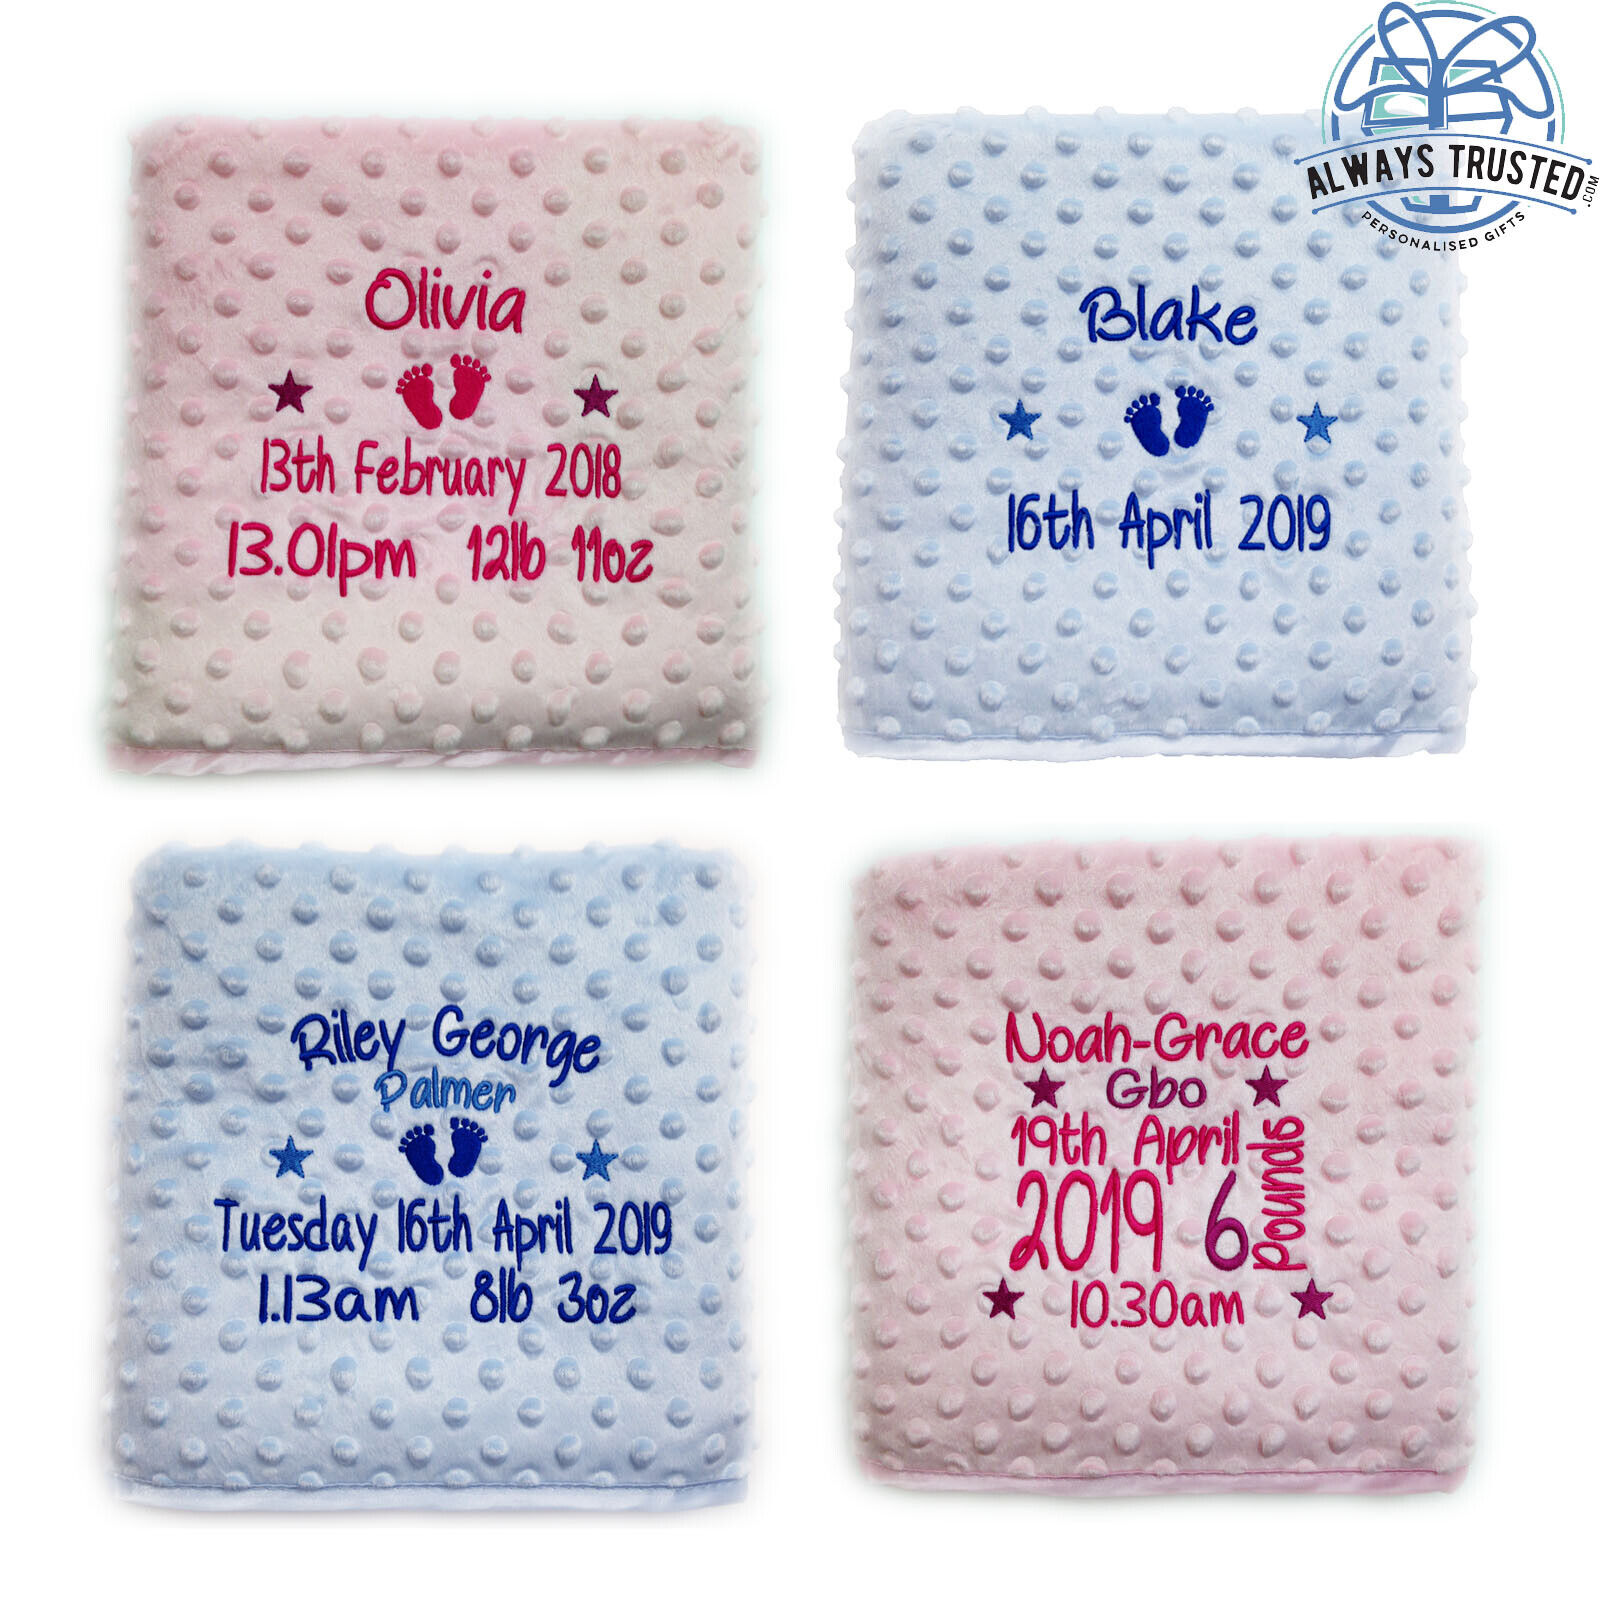 Quality Baby Gifts Uk : Personalised baby blanket embroidered luxury bubble feel